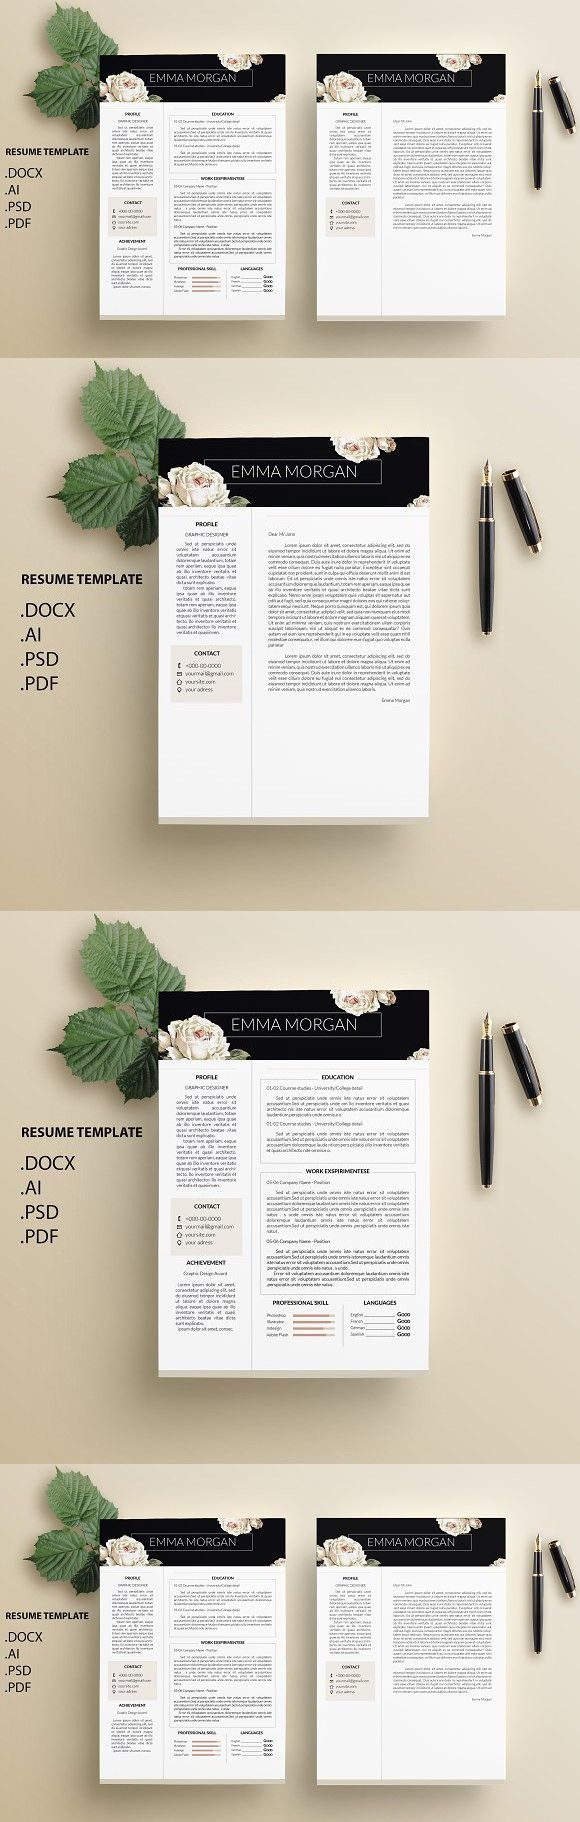 Cv Templates Pdf%0A White Rose CV   Resume Template   M  Resume Templates